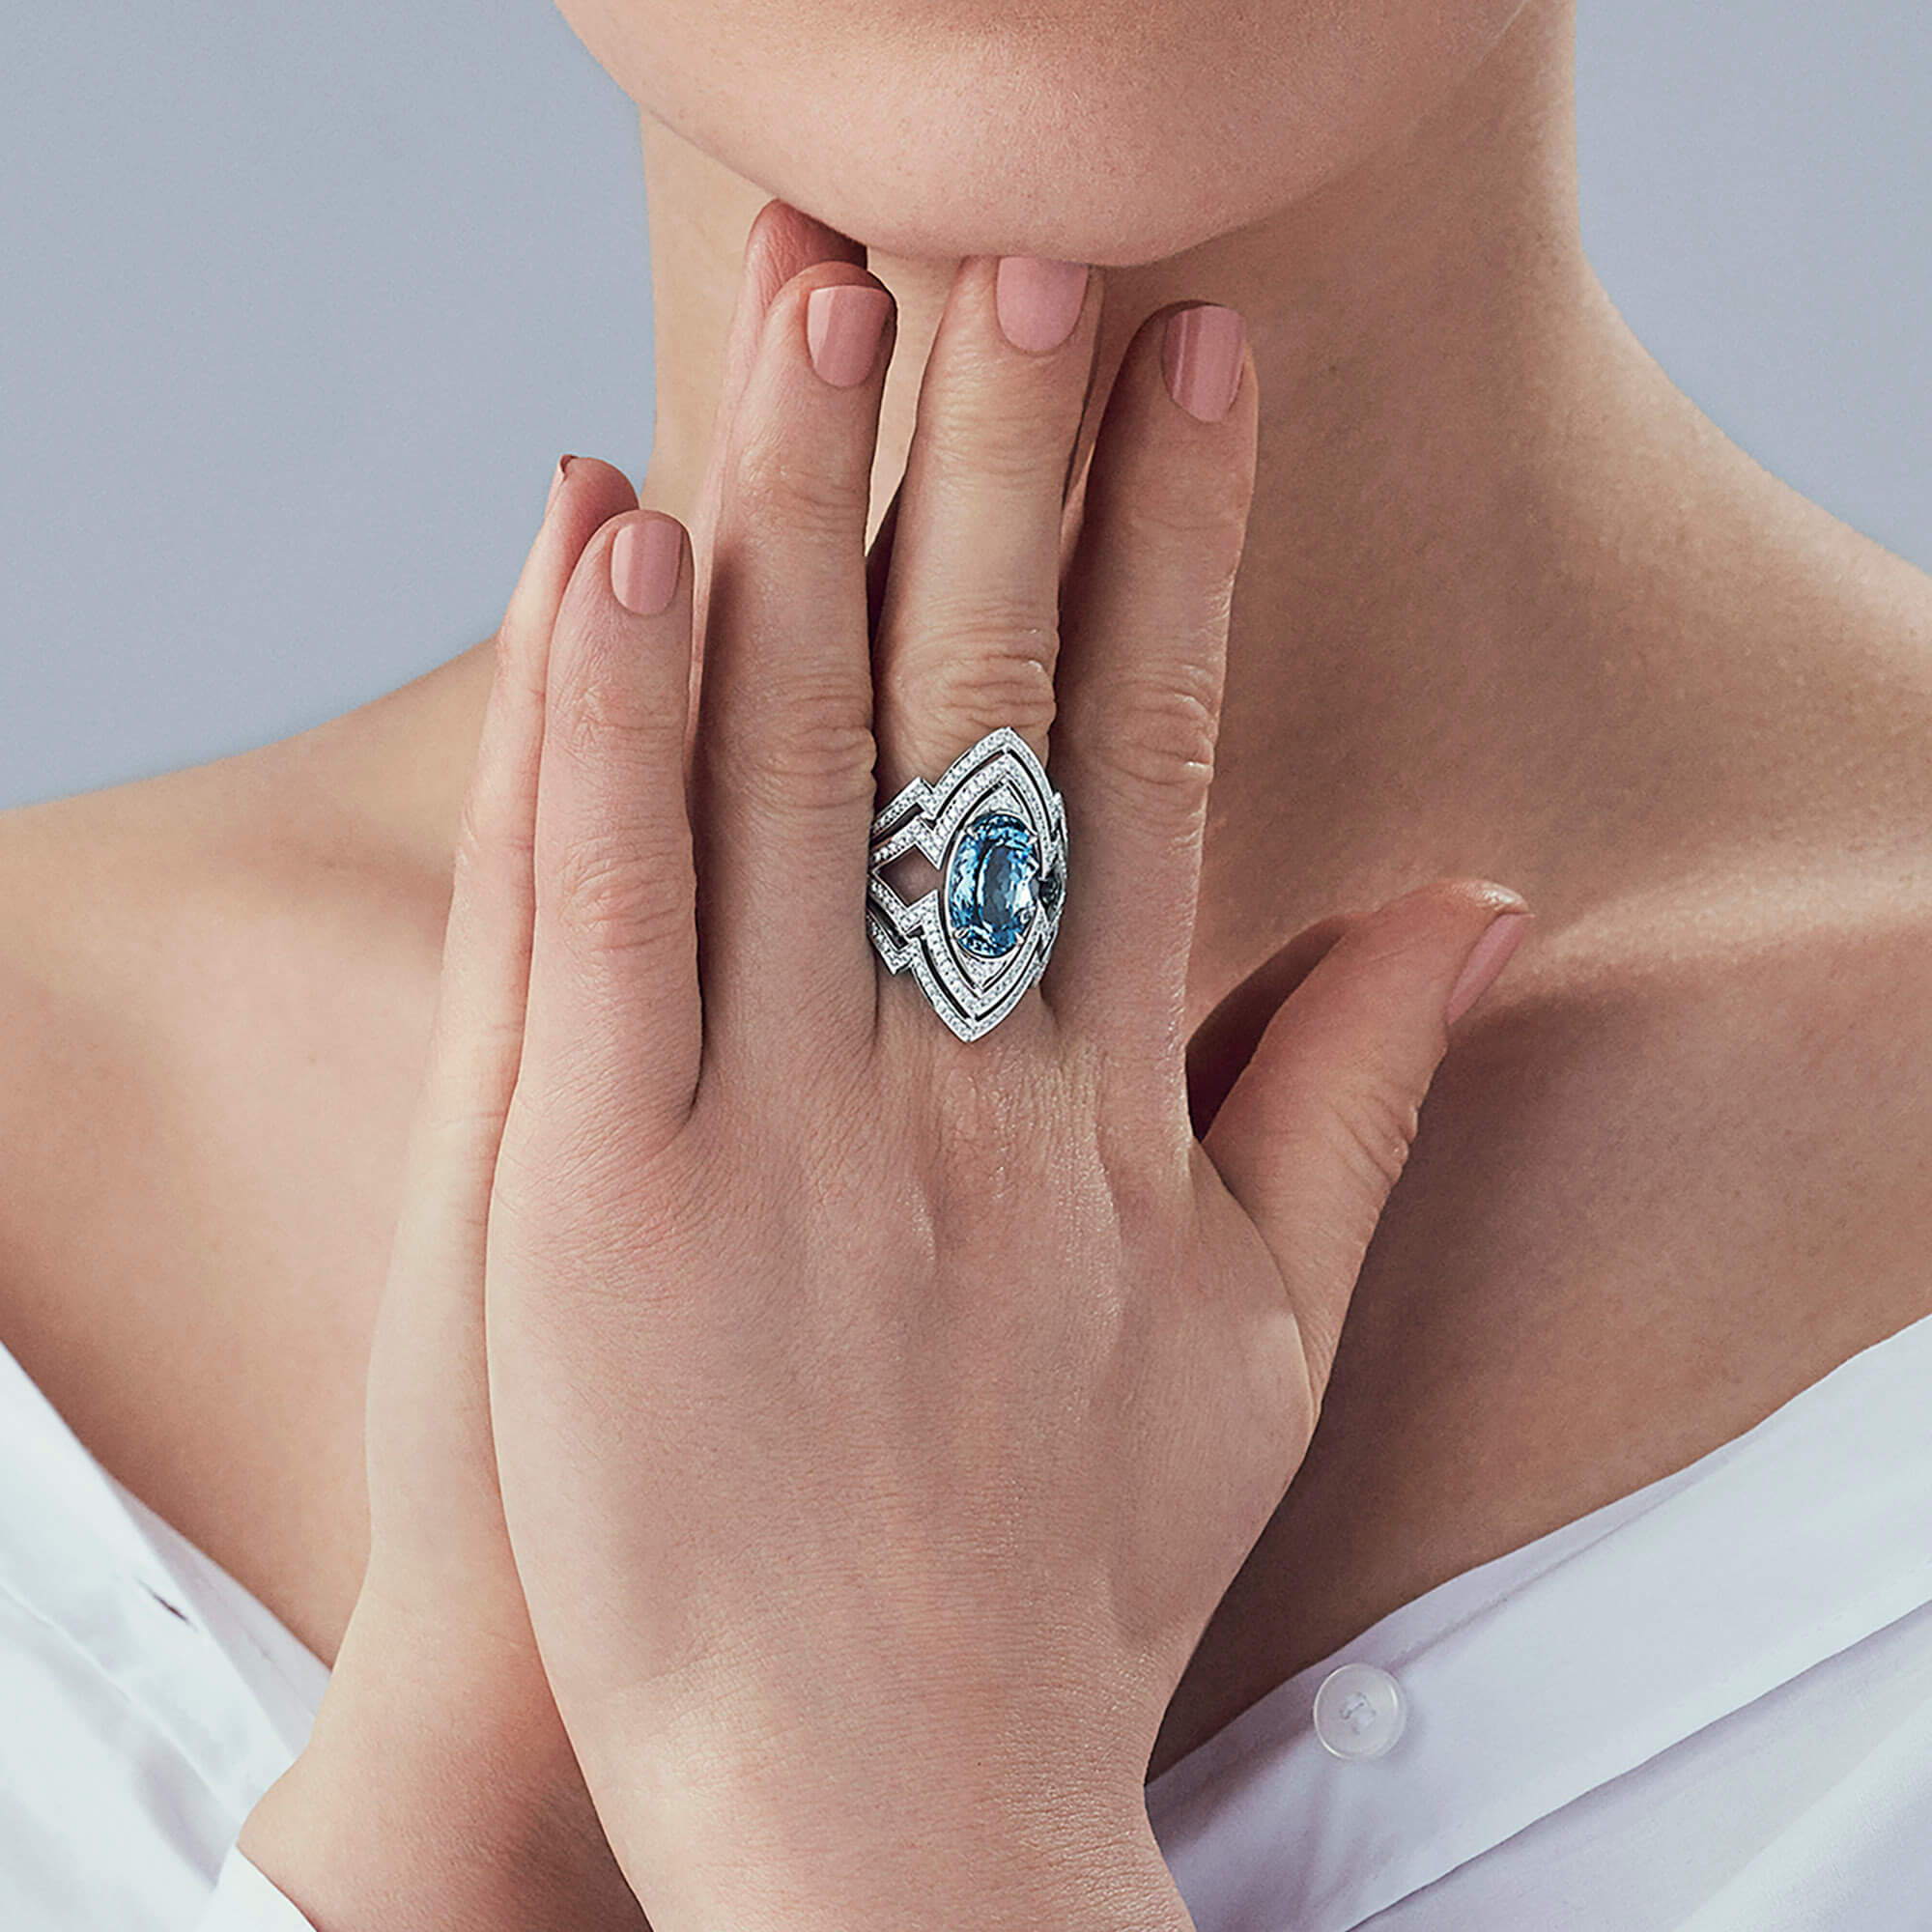 Aquamarine Couture 18ct White Gold Ring - Image 2 | Lady Stardust